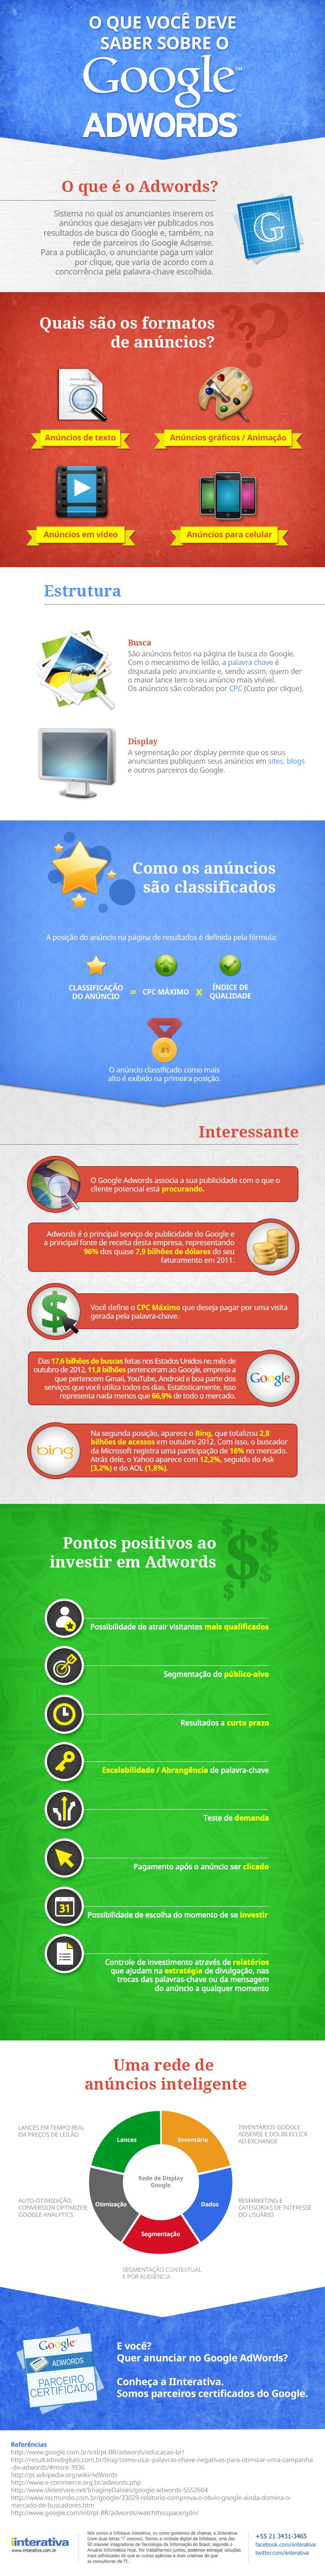 Descubra como funciona o Google Adwords. #SocialMedia #Adwords #infographic                                                                                                                                                     Mais